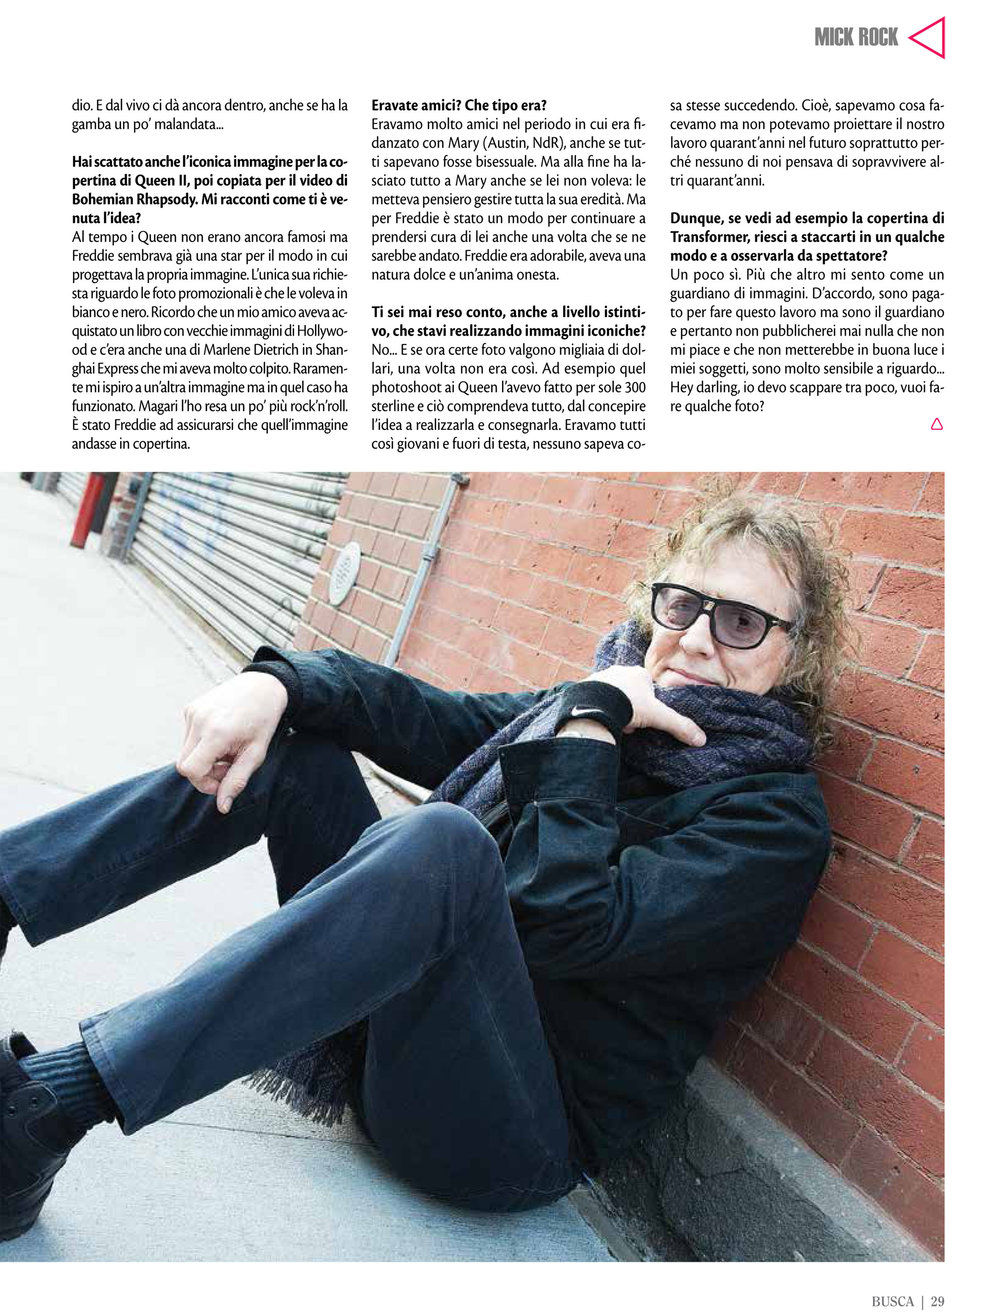 Buscadero: Mick Rock interview & photo